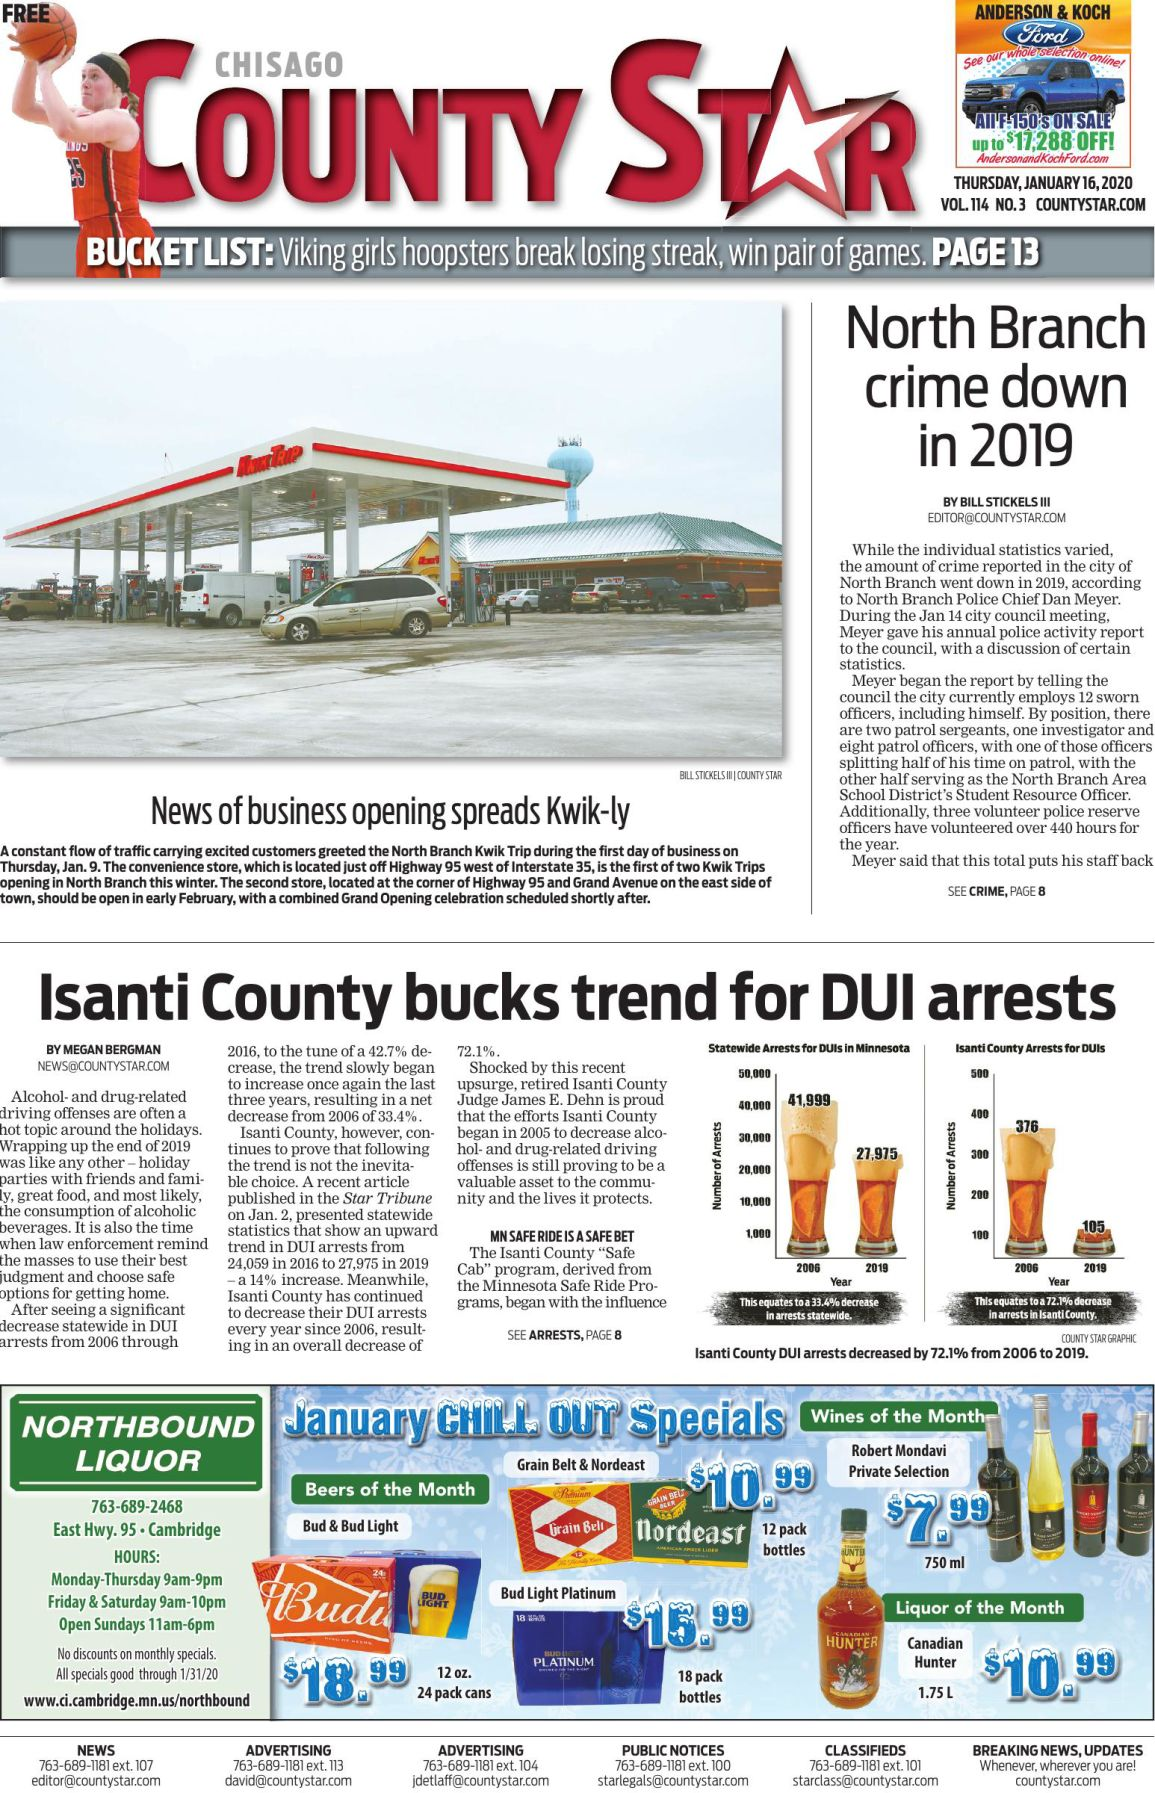 Chisago County Star January 16, 2020 e-edition